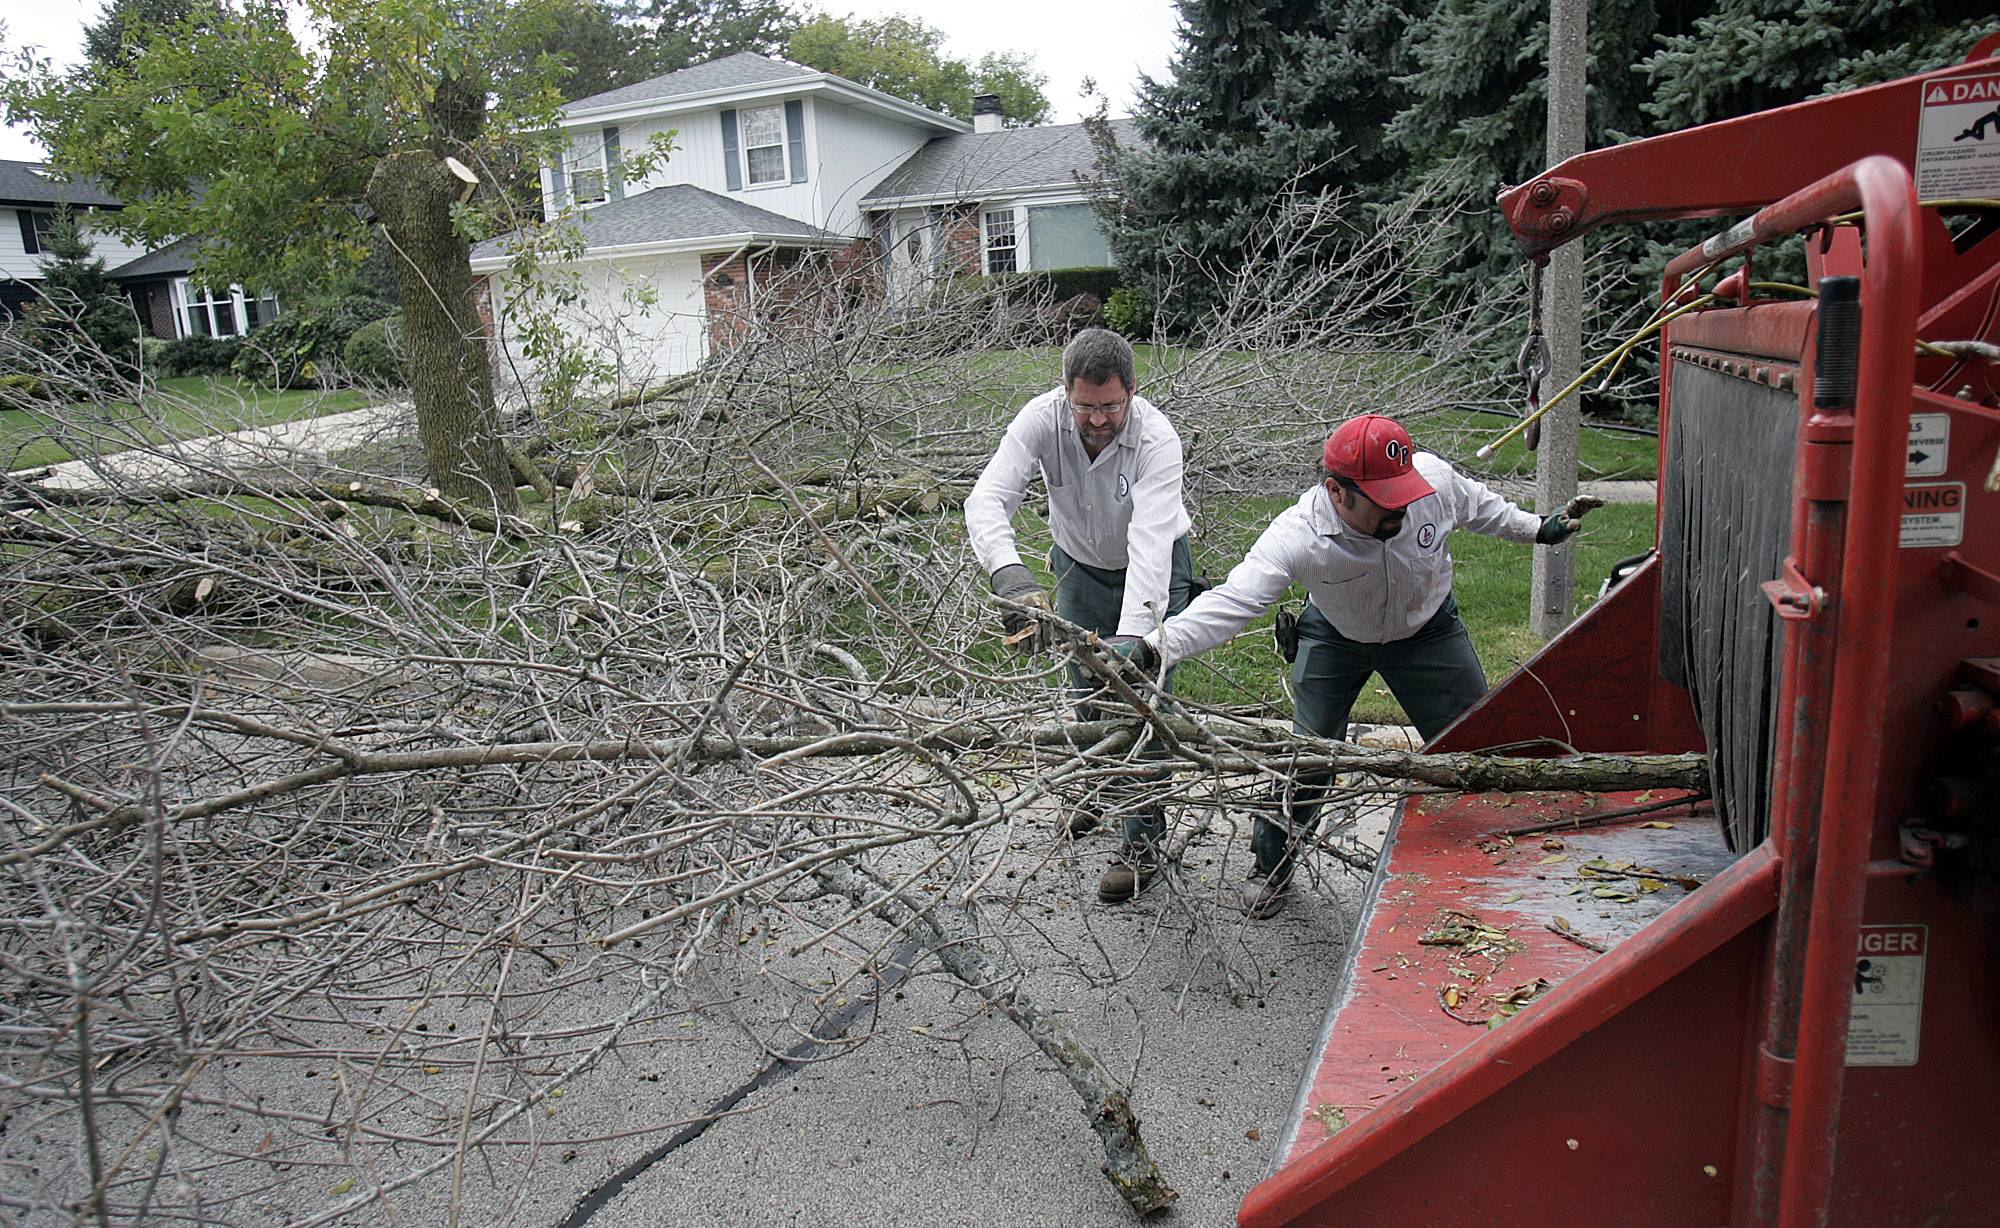 Public works employees cut down trees that have been infected with the emerald ash borer. In Geneva alone, nearly 2,800 trees were killed by the invasive insect. This year, West Dundee will spend $35,000 on its tree replacement program.